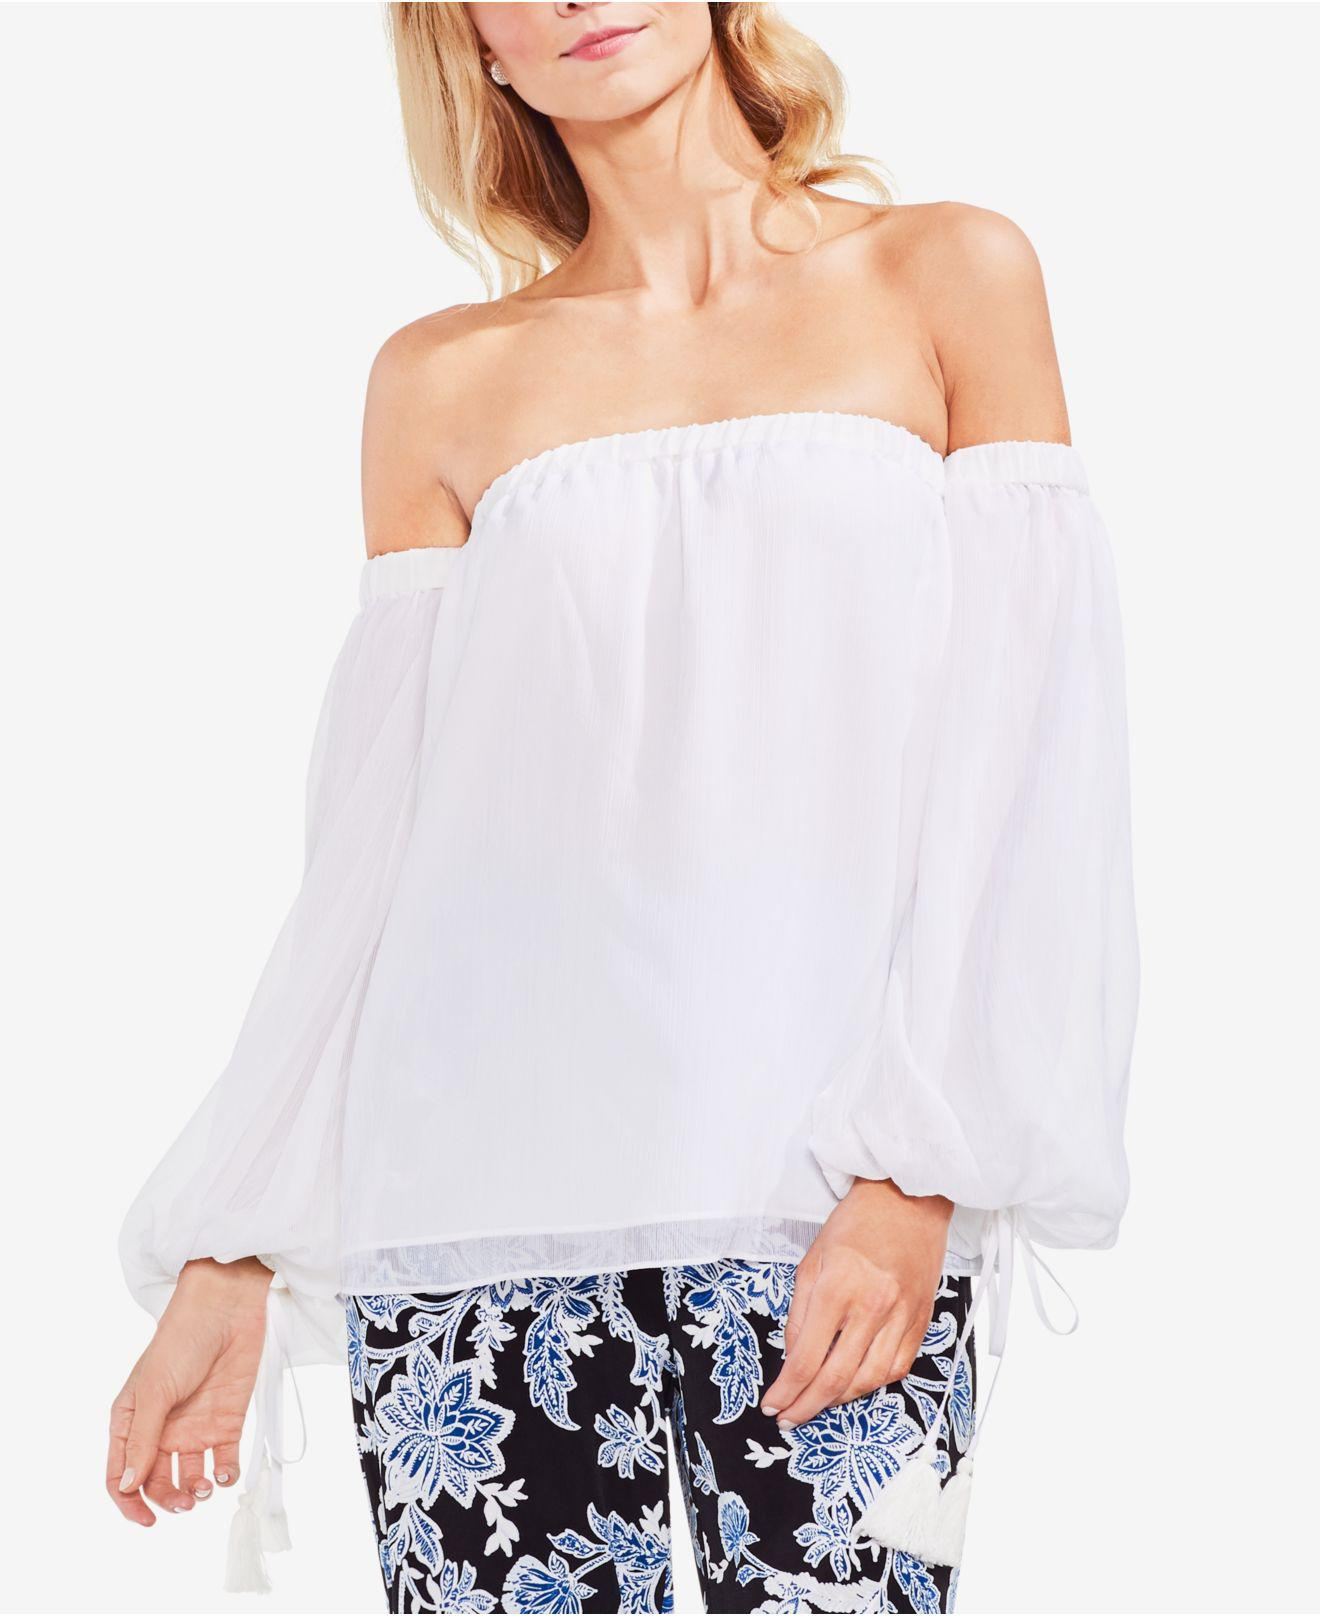 a1bea175591da4 Lyst - Vince Camuto Off-the-shoulder Tassel-detail Top in White